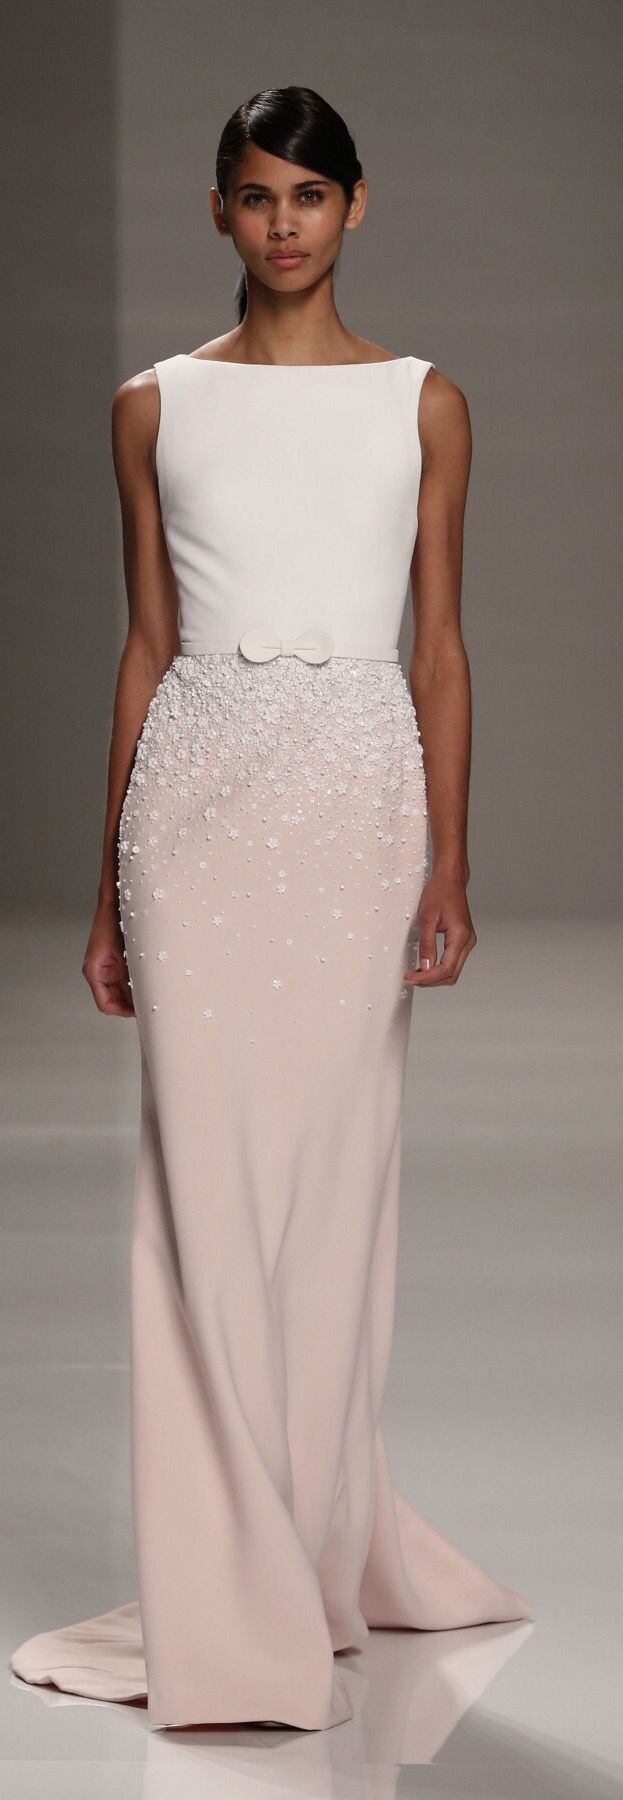 Georges Hobeika Couture Spring-Summer 2015 jαɢlαdy